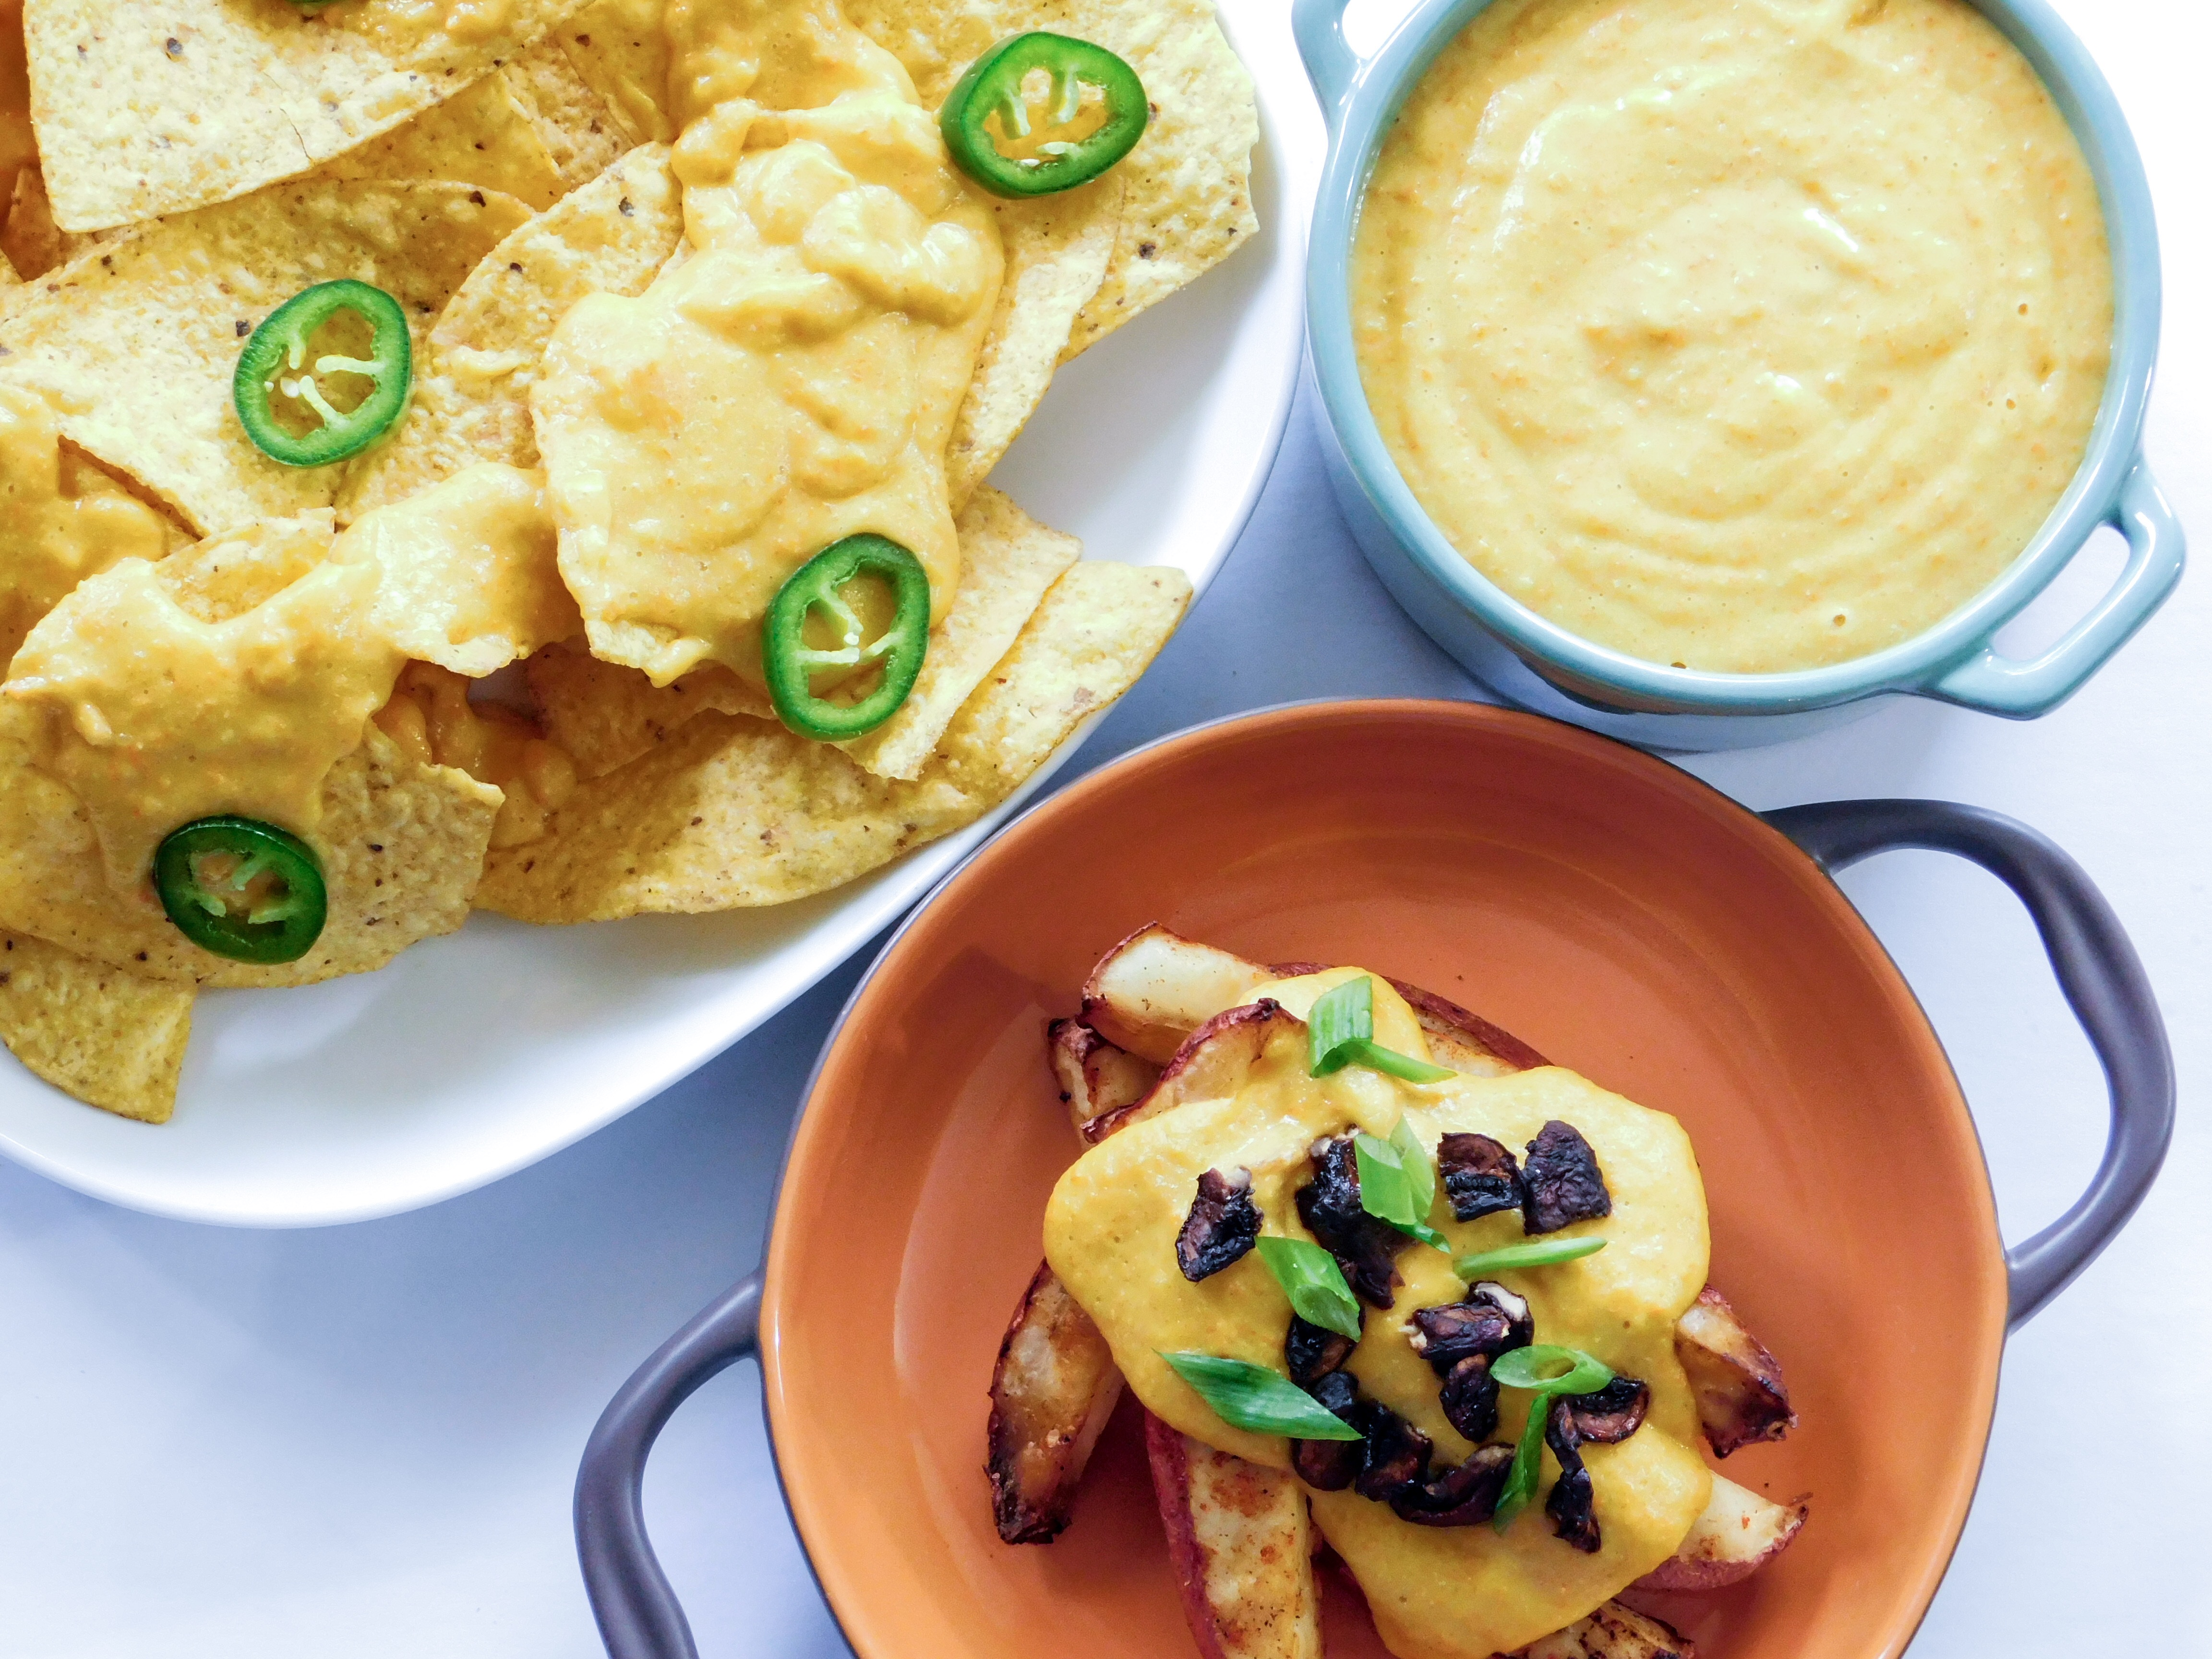 Nacho Cheese, Fries, and Chips